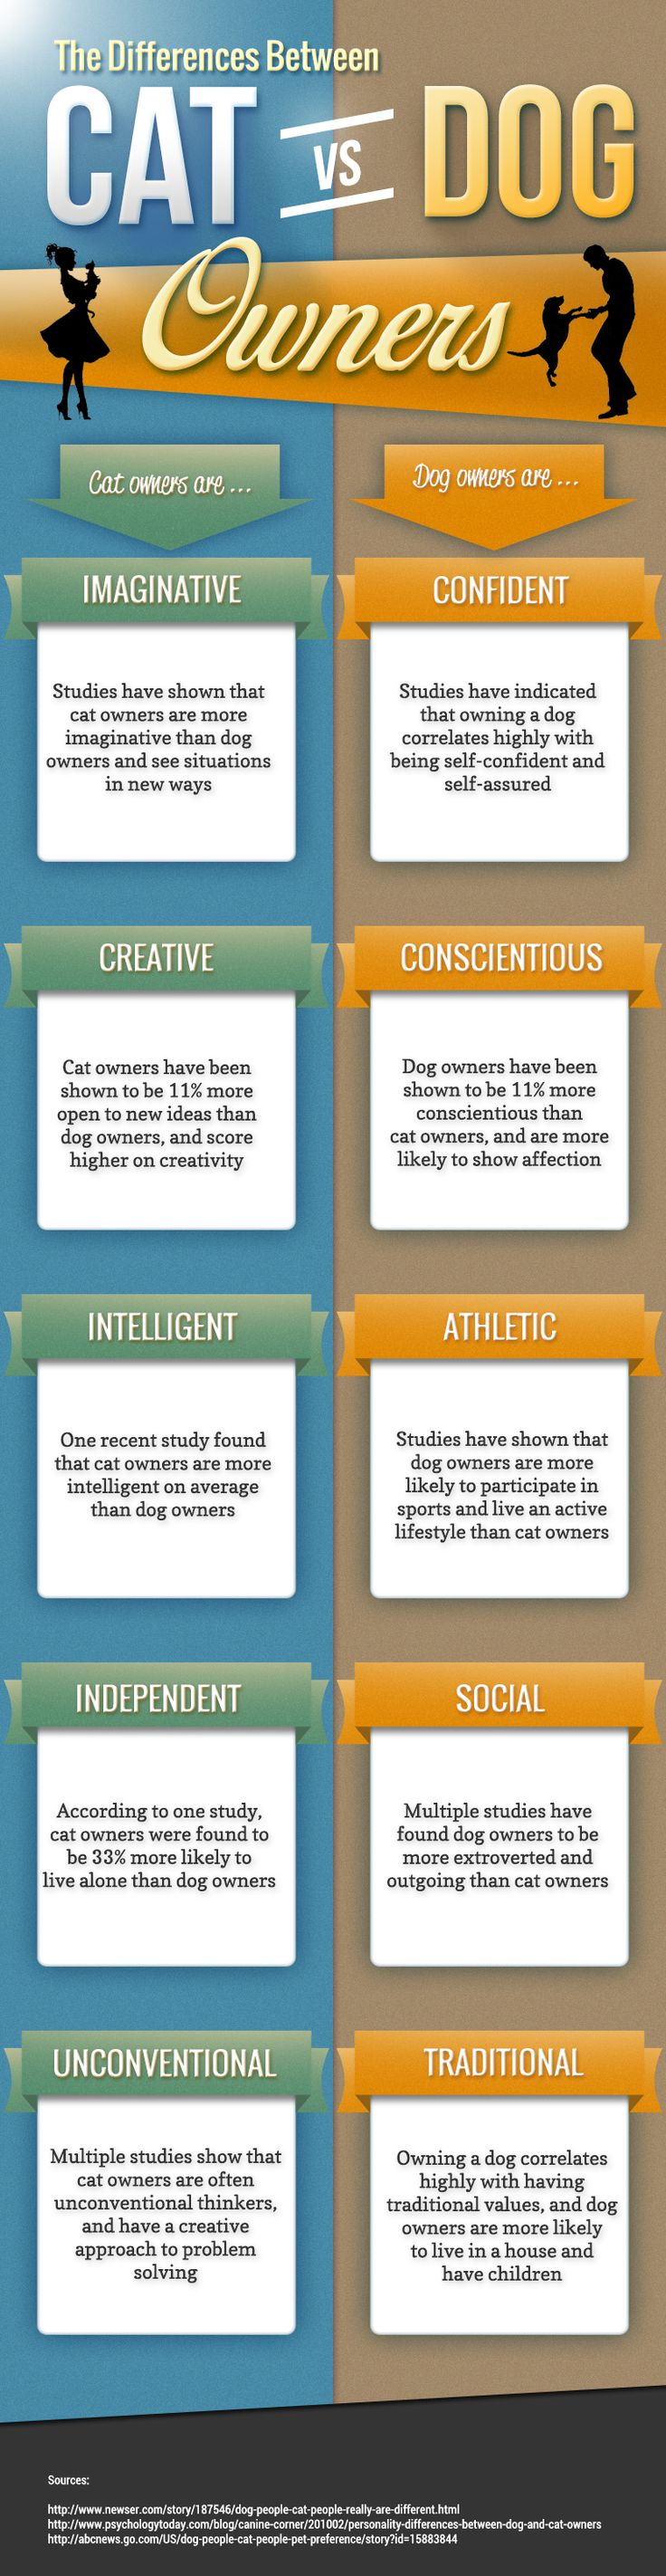 The Differences Between #Dog & #Cat Owners - Are you more of a dog person or a cat person? http://www.entirelypets.com/differences-cat-dog-owners.html?utm_source=pinterest&utm_medium=web&utm_campaign=epptpostinfo#utm_sguid=148622,f0532447-42a0-6abb-10ae-dc21a0c4e8c7